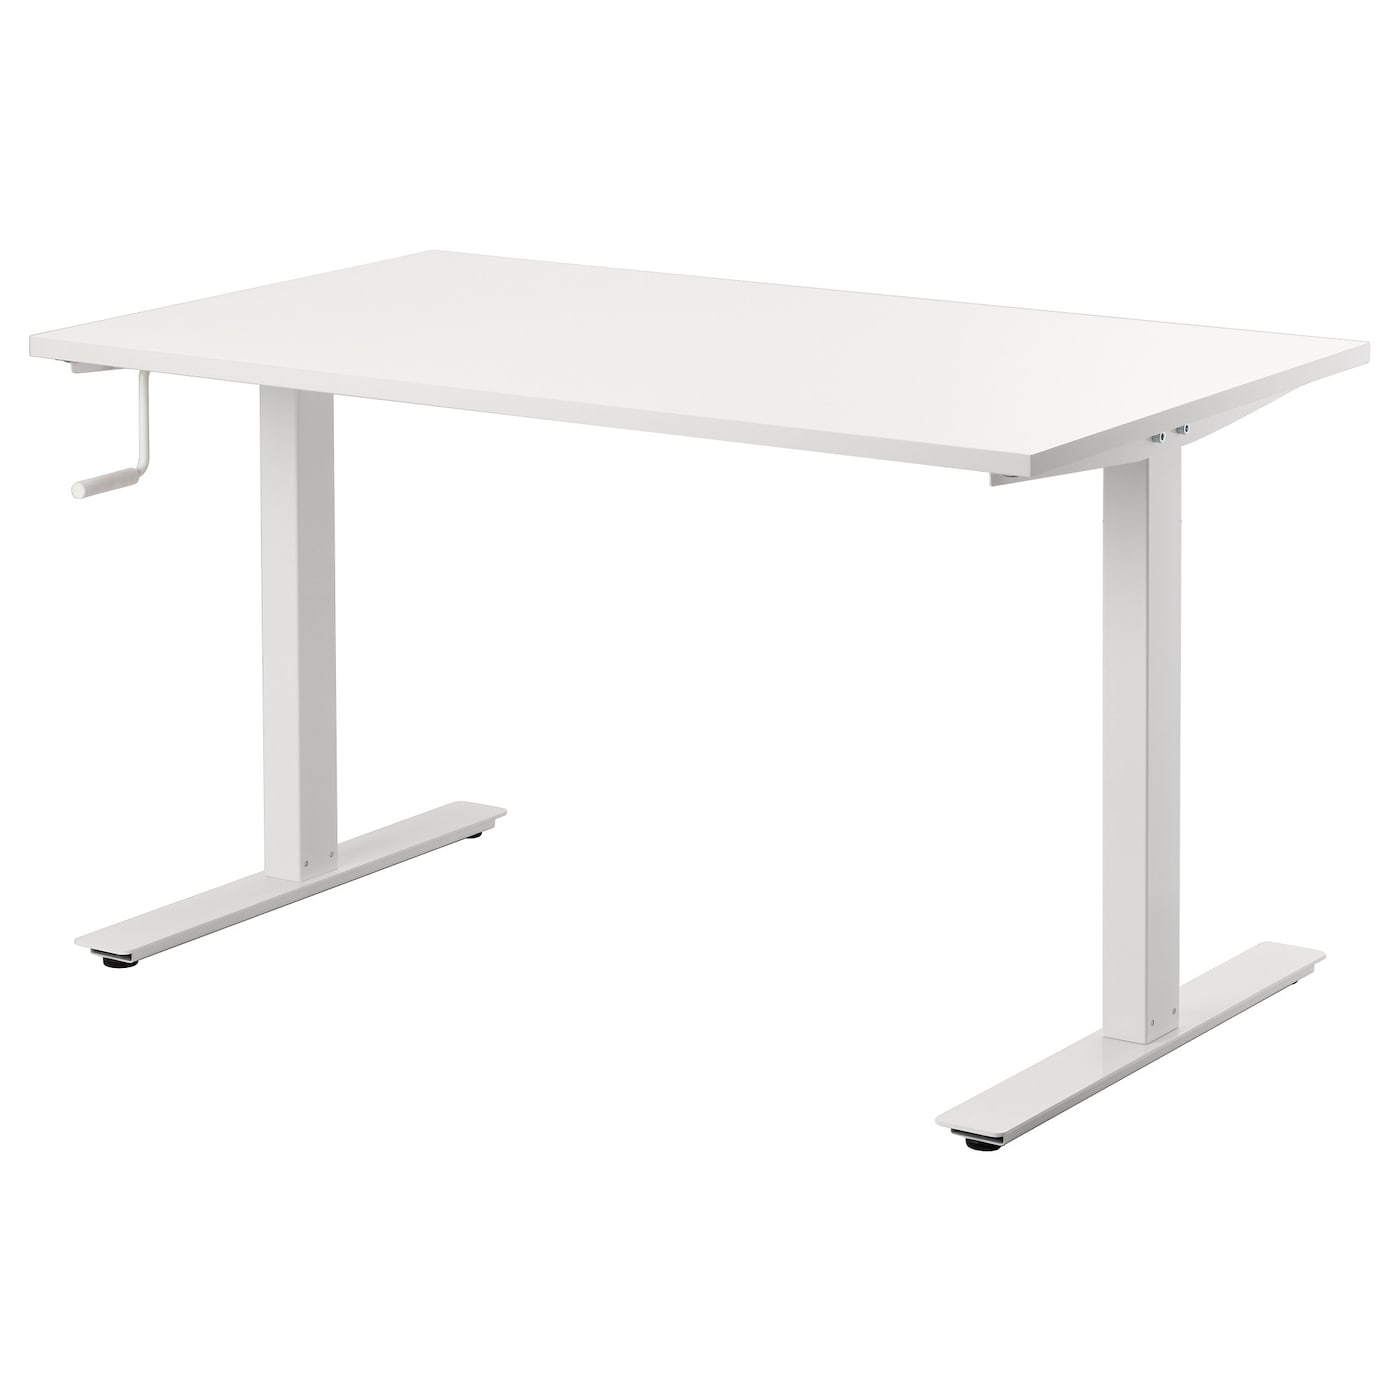 skarsta desk sit stand white 120x70 cm ikea. Black Bedroom Furniture Sets. Home Design Ideas